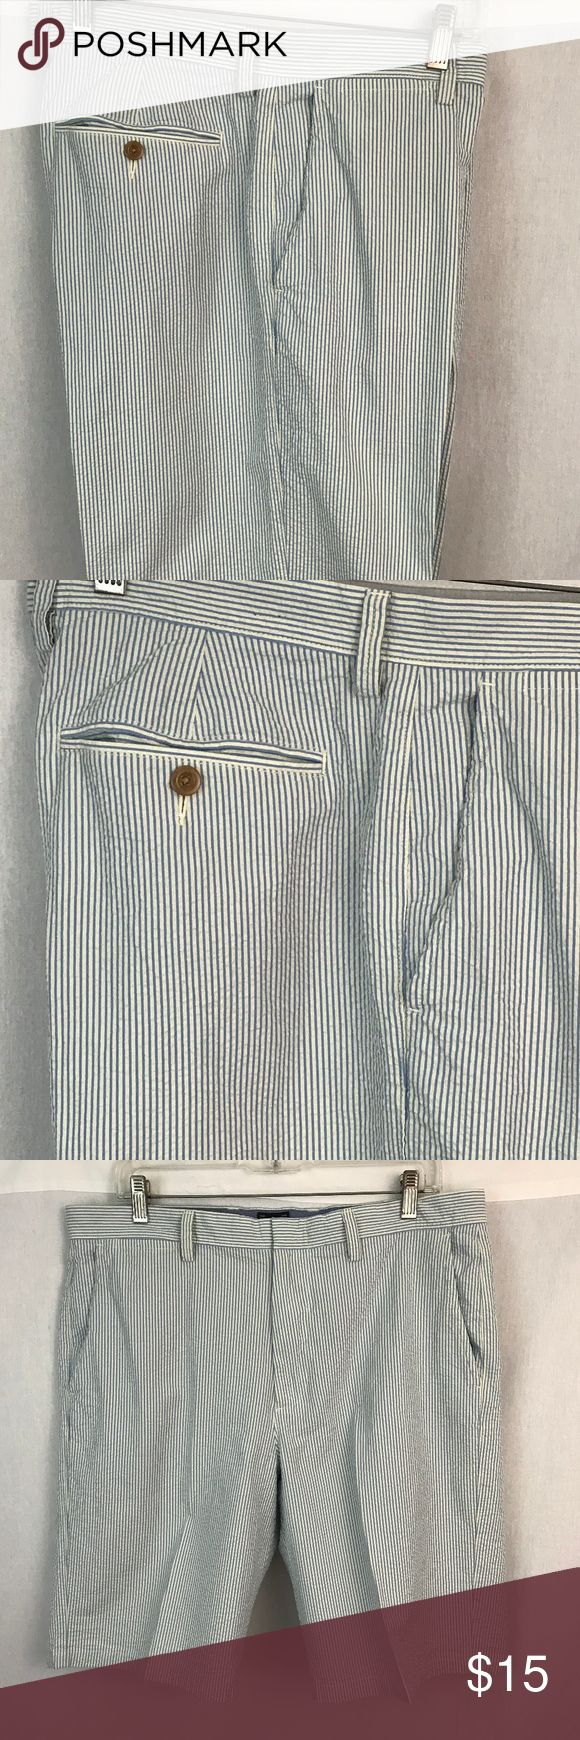 "J. Crew Club Men's Shorts Seersucker Stripe Blue Excellent pair of J. Crew Club casual shorts.  Blue, white pinstripe seersucker.  Lightweight.  Classic.  Flat front.  Size 35.  Great pre-owned condition.  No holes or stains.    Waist = 17.7.5"" measured flat.  Inseam - 10.5"".  Rise = 12"".  Thanks for looking and please feel free to ask questions. J. Crew Shorts"